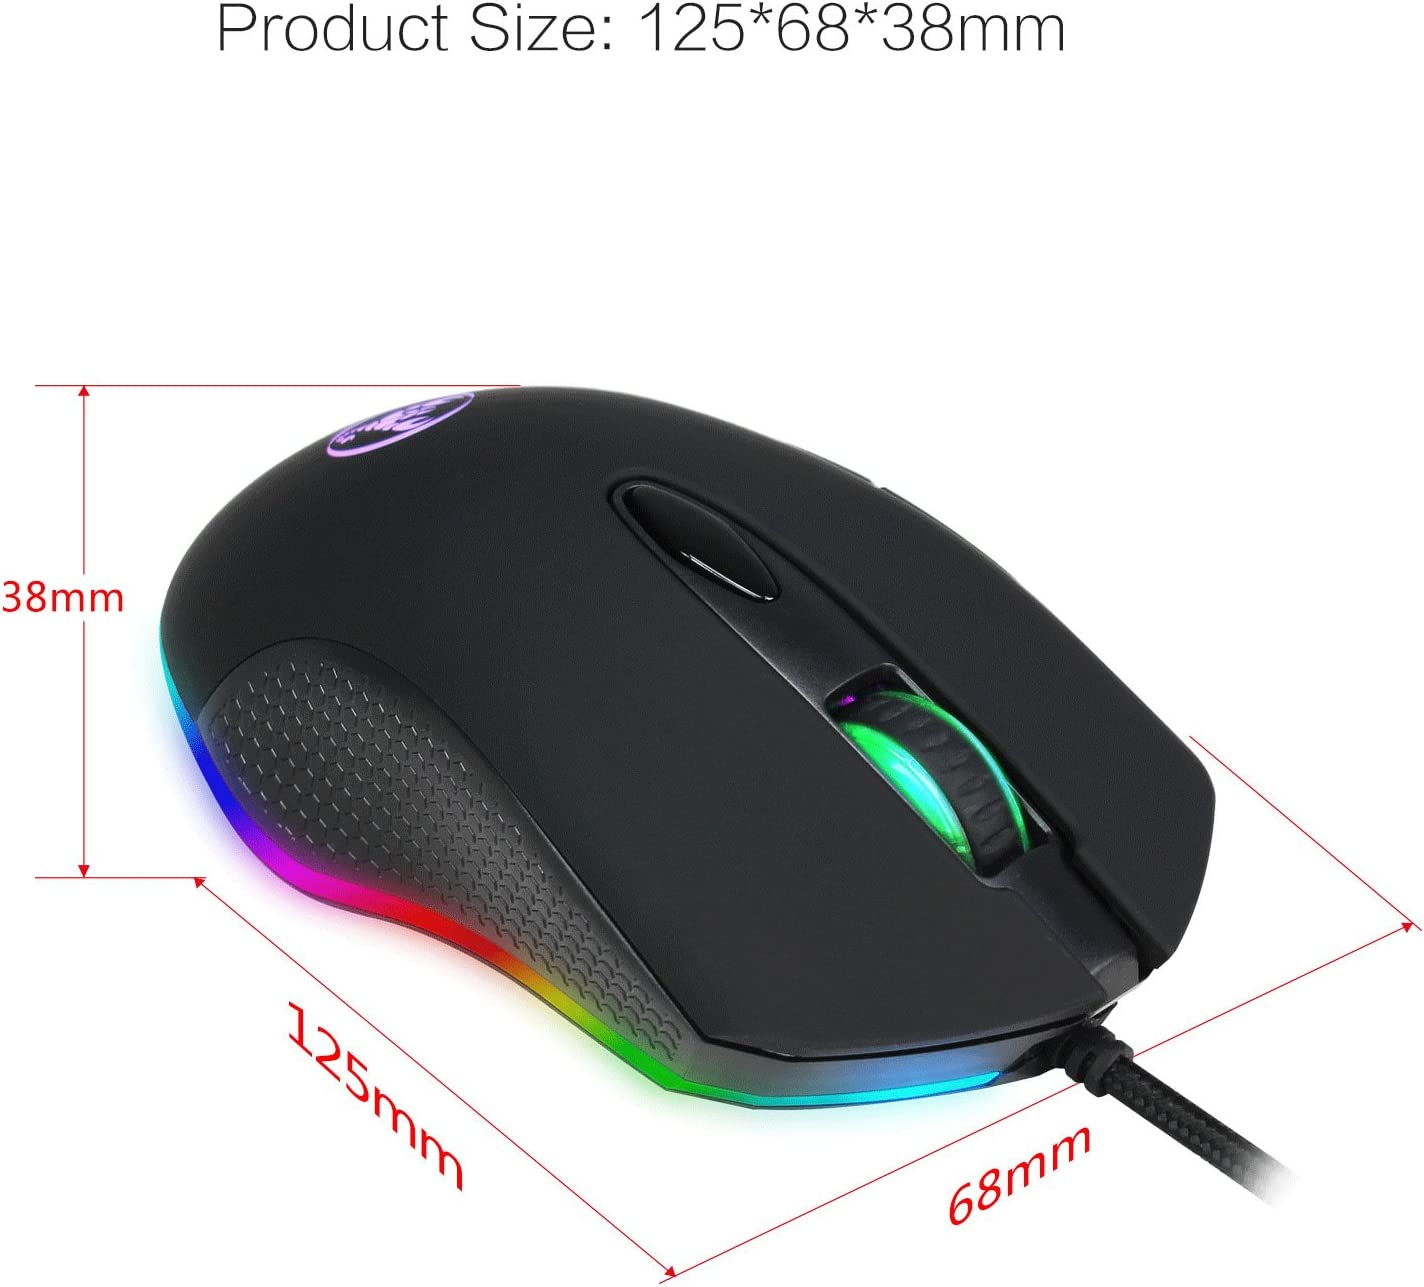 Notebook E-Sports 4800dpi Adjustable Wired Mouse Ergonomic Design Optical Mouse for Laptop Mac Gaming Mouse RGB Lighting PC